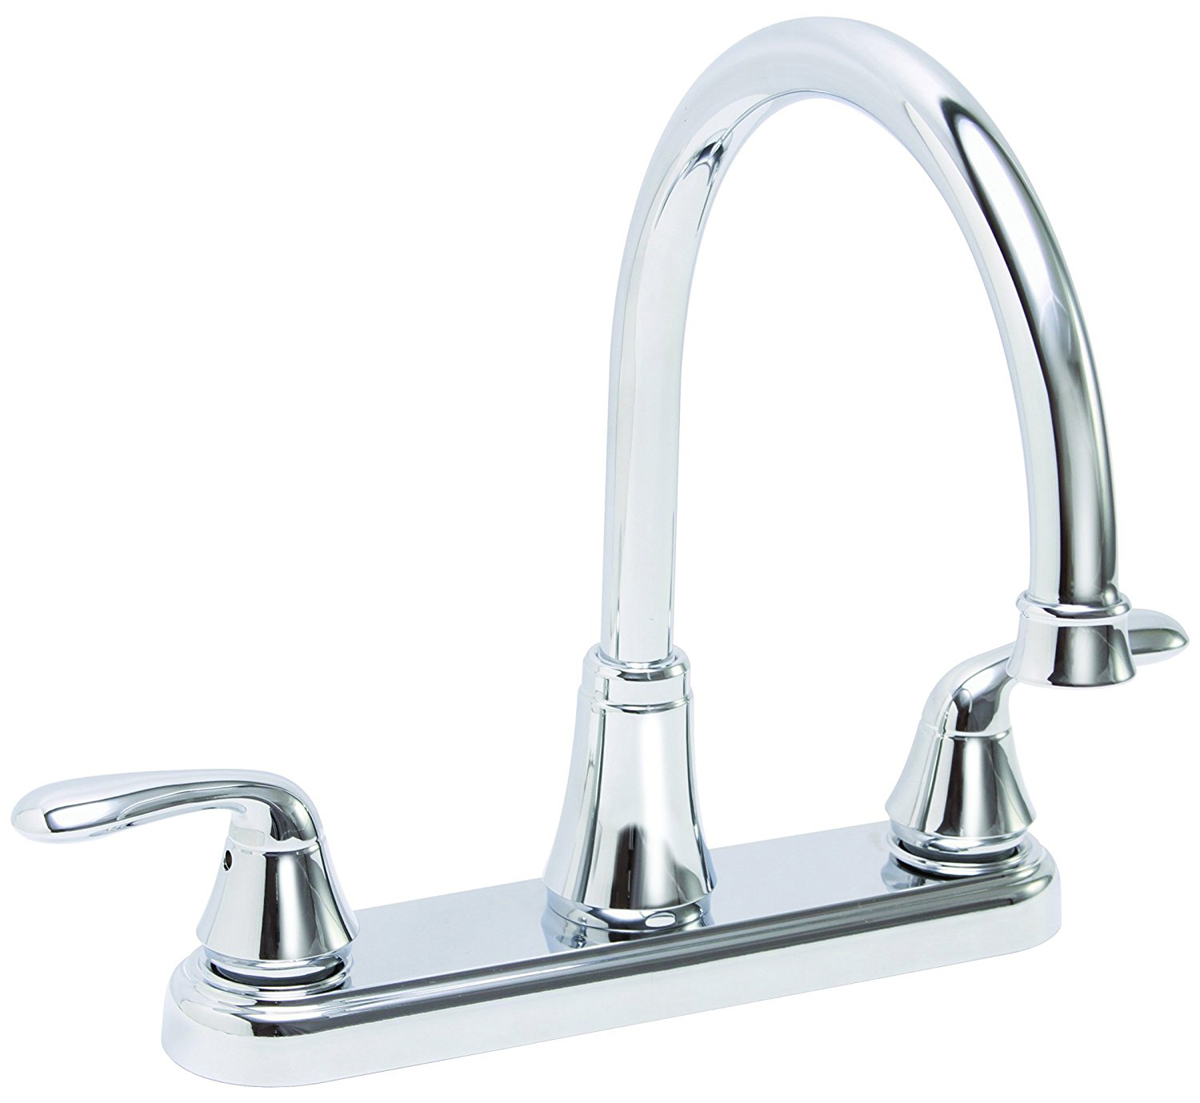 Premier Waterfront Lead-Free Two-Handle Kitchen Faucet without Spray, Chrome